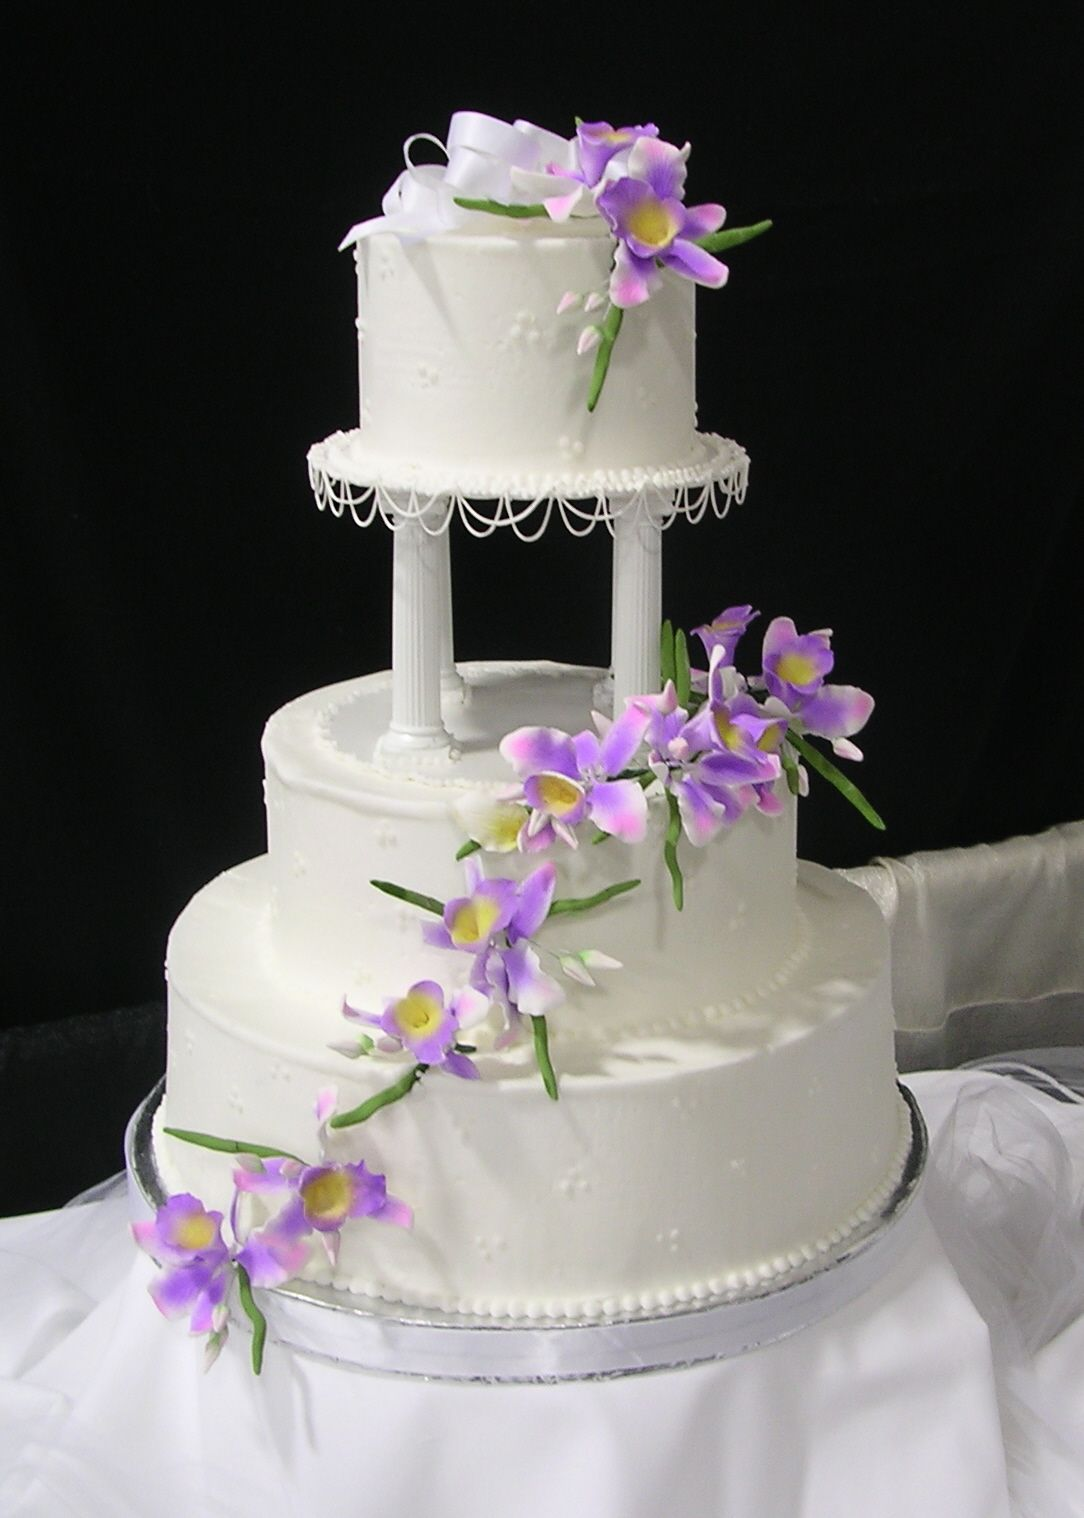 wedding cakes with purple flowers buttercream wedding cakes purple and white pinterest. Black Bedroom Furniture Sets. Home Design Ideas